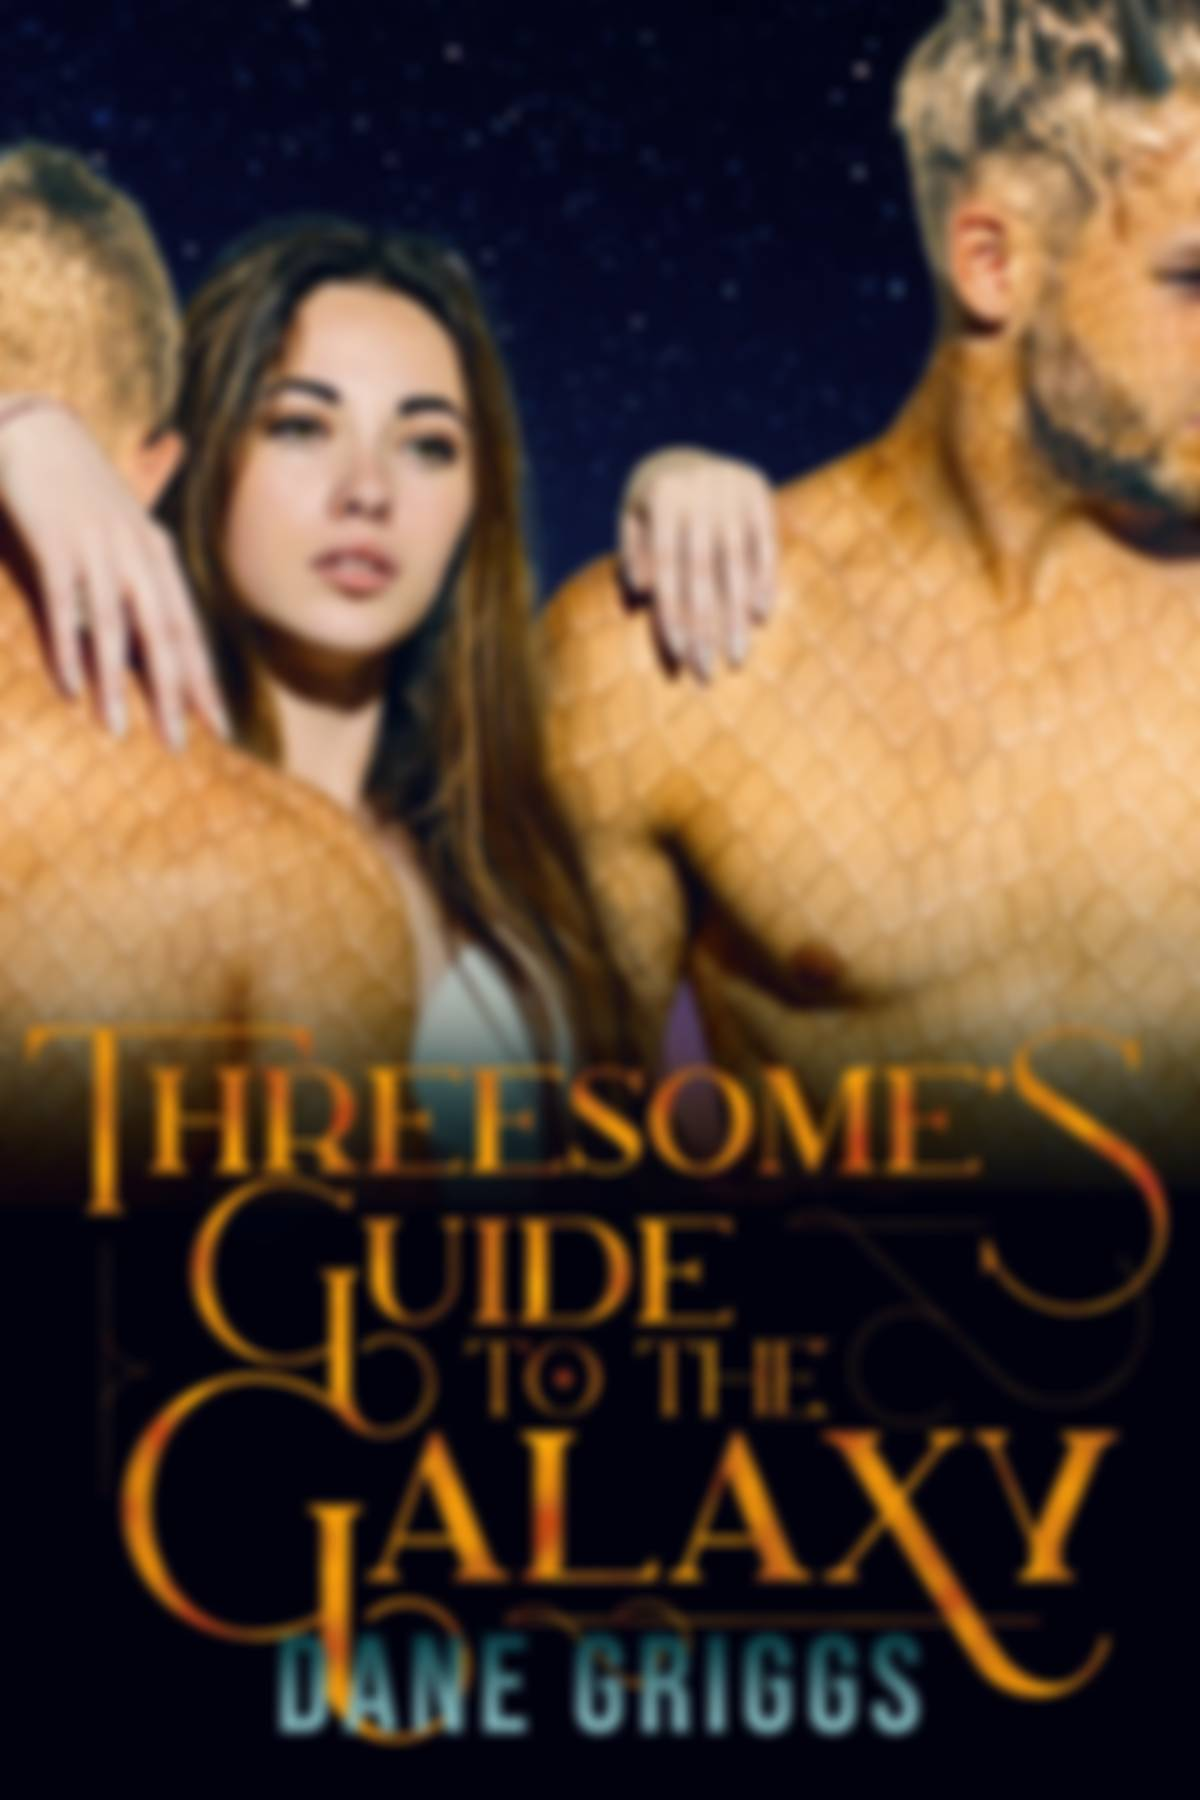 Threesome's Guide to the Galaxy book cover